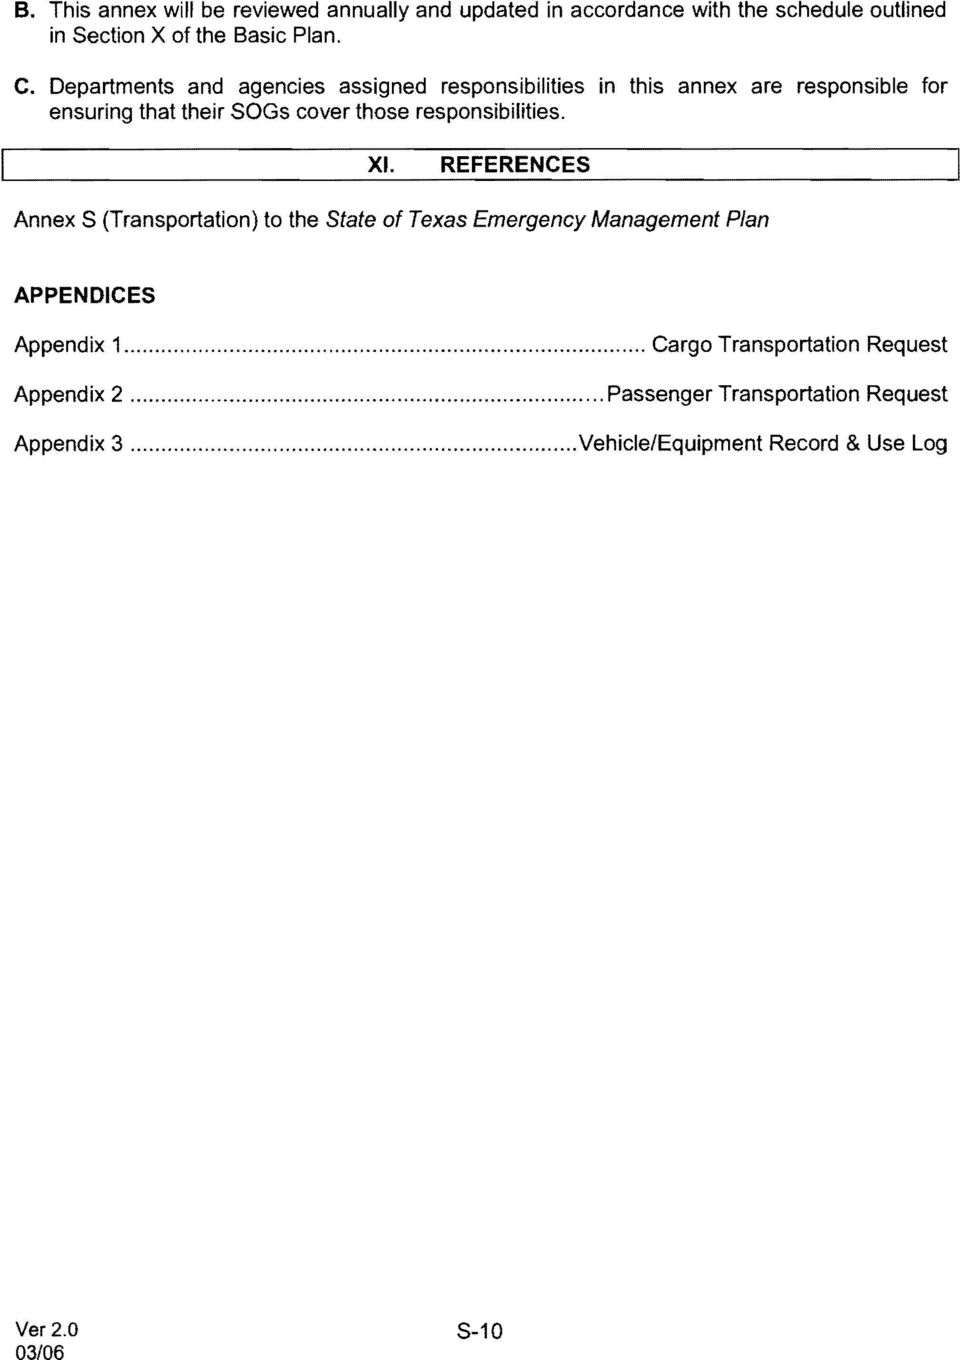 responsibilities. XI. REFERENCES Annex S (Transportation) to the State of Texas Emergency Management Plan APPENDICES Appendix 1.